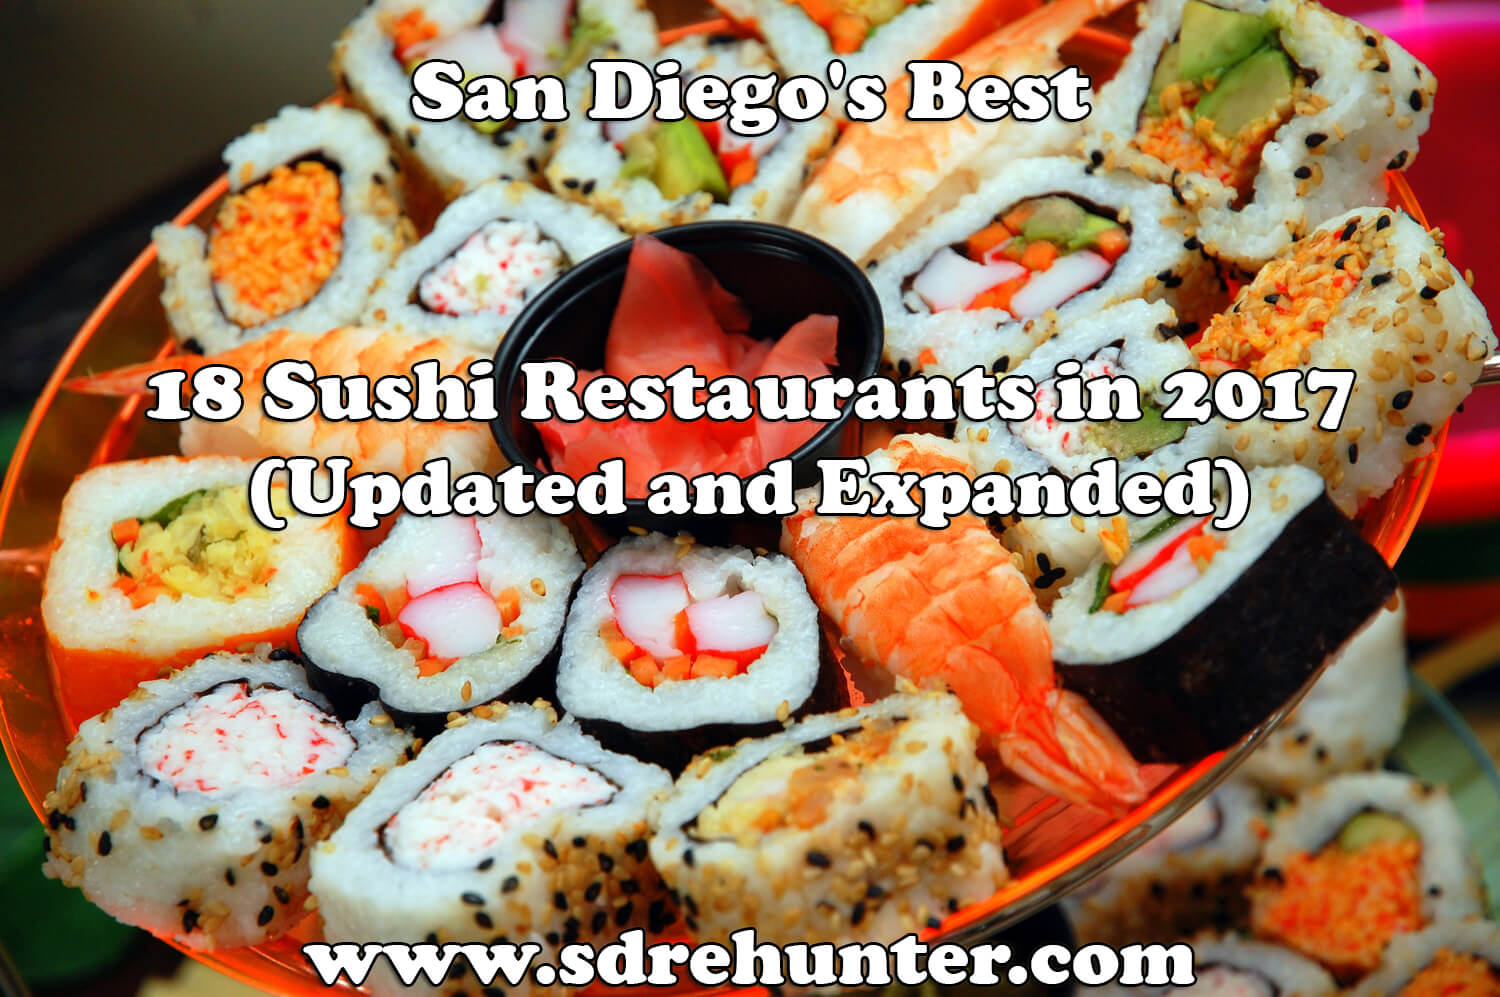 Best Sushi Restaurants 2017